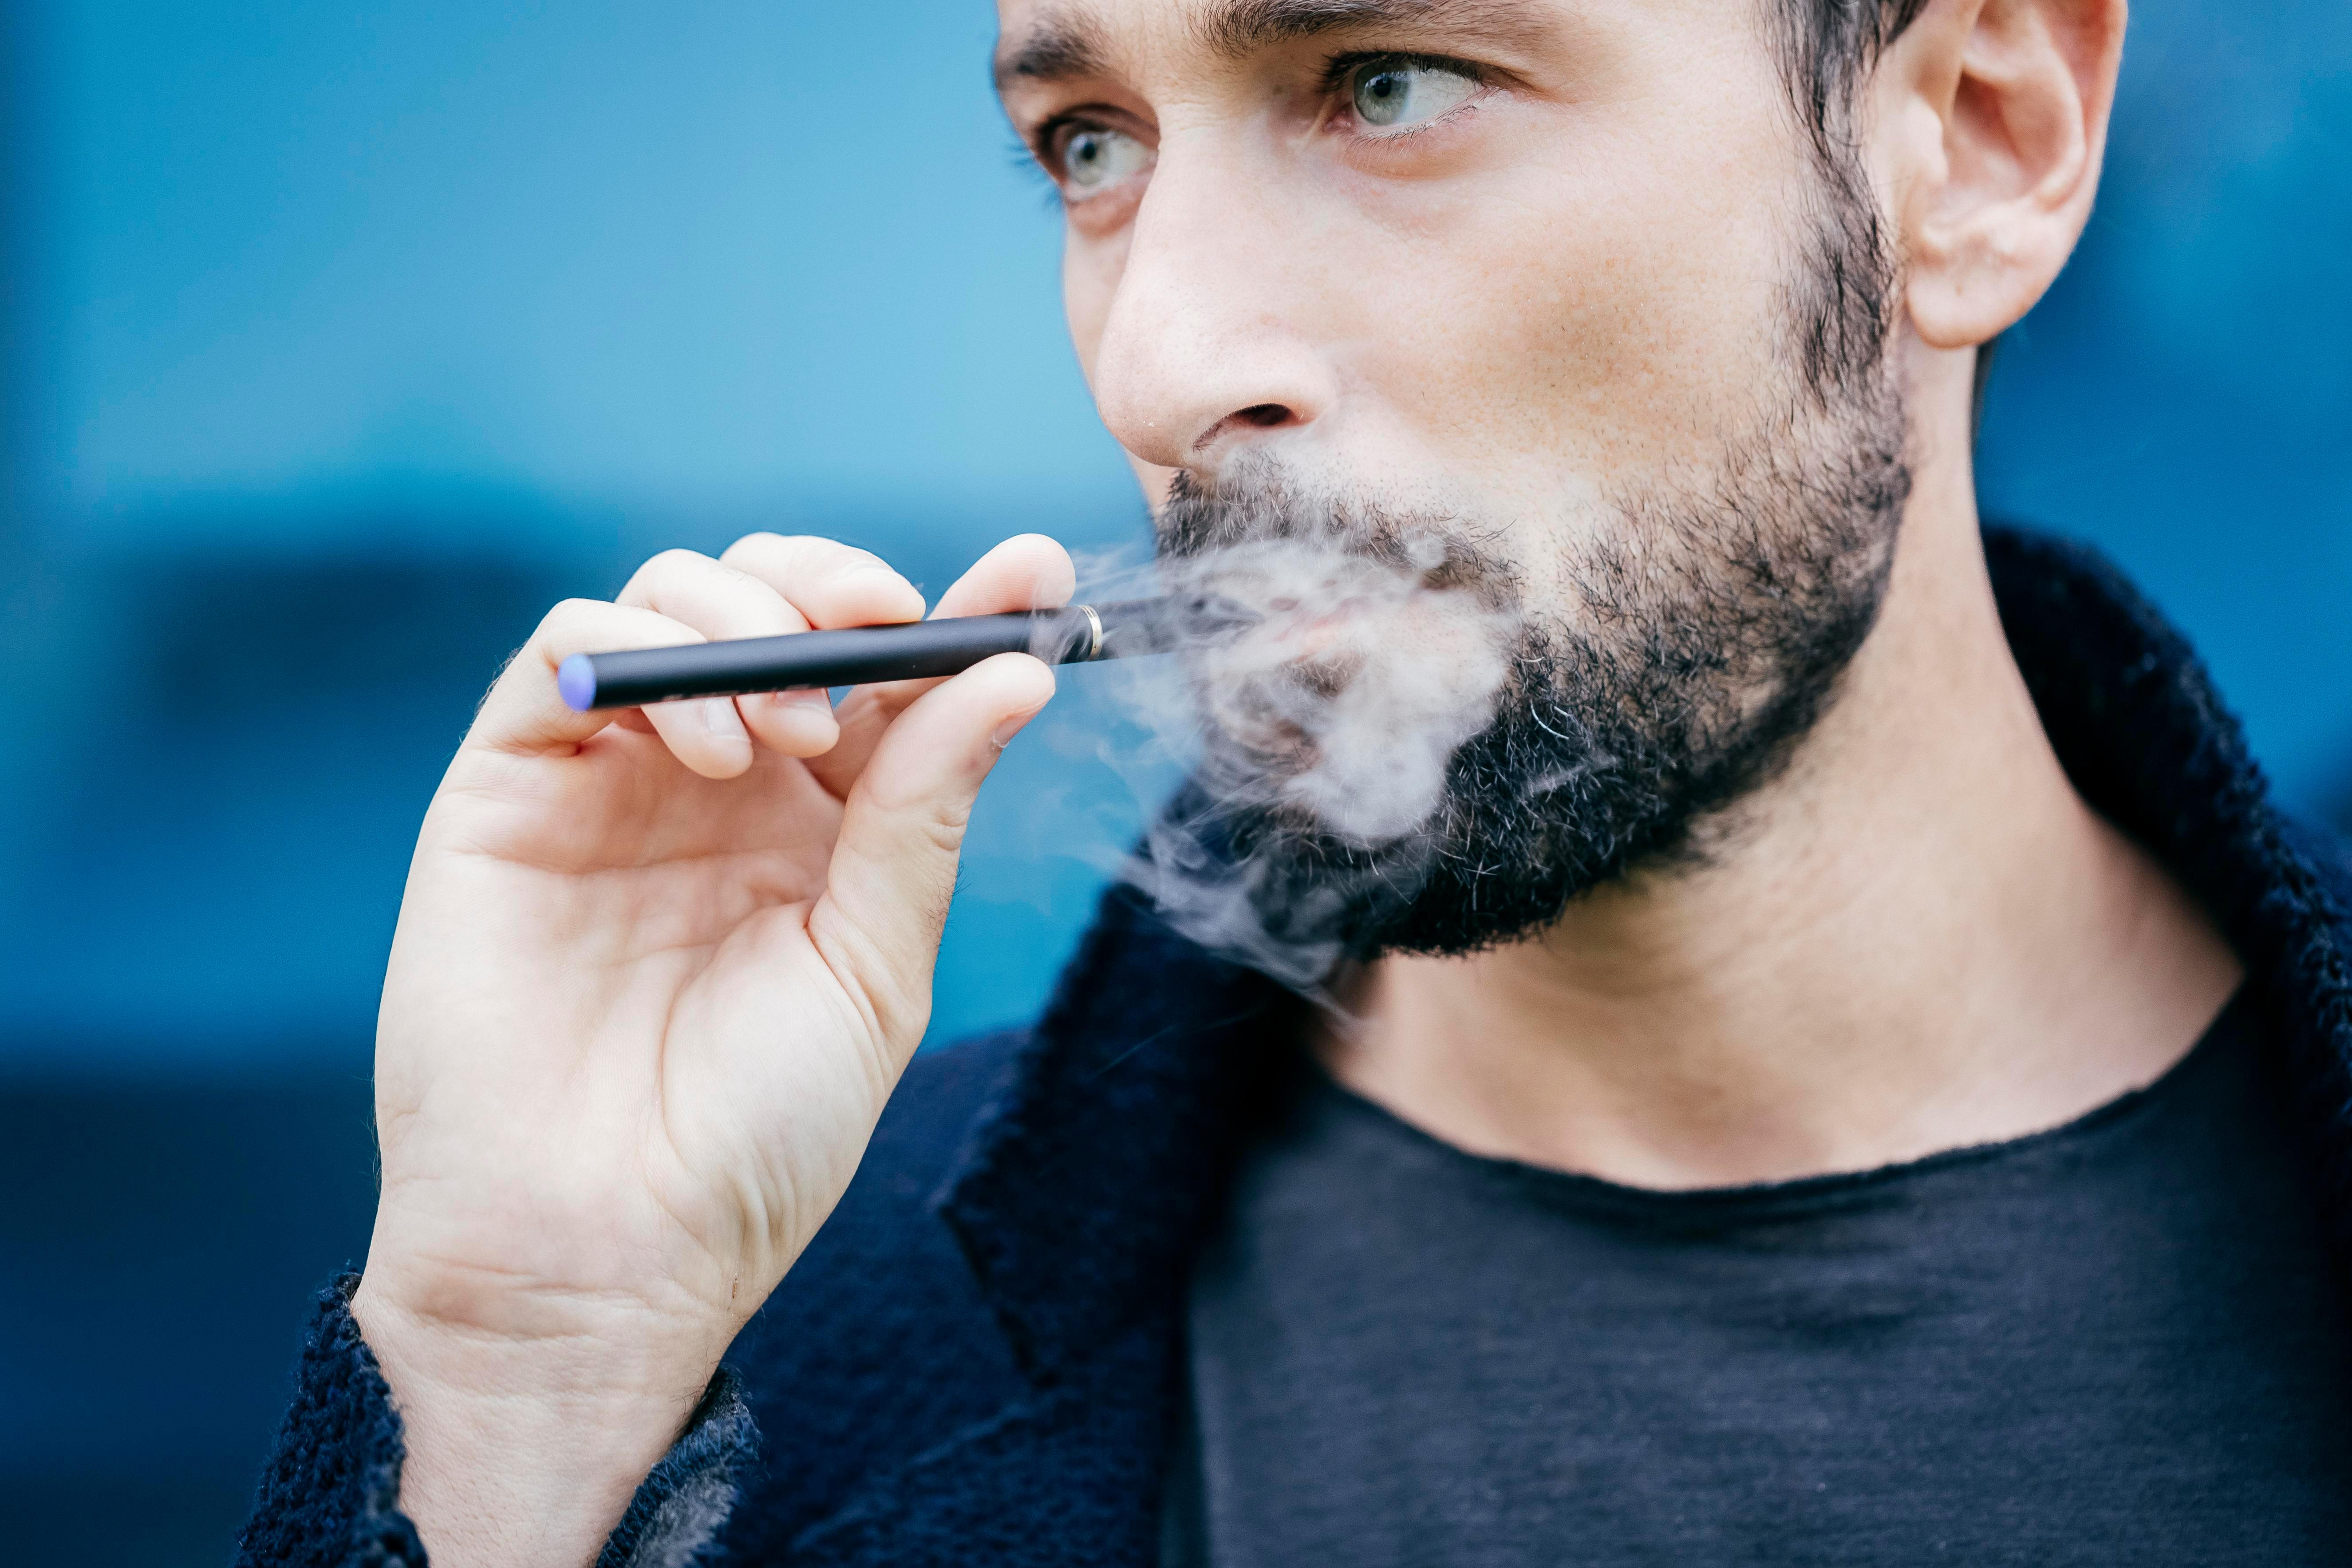 Experts warn e-cigarettes 'are not as safe as promoted' and can lead to liver disease